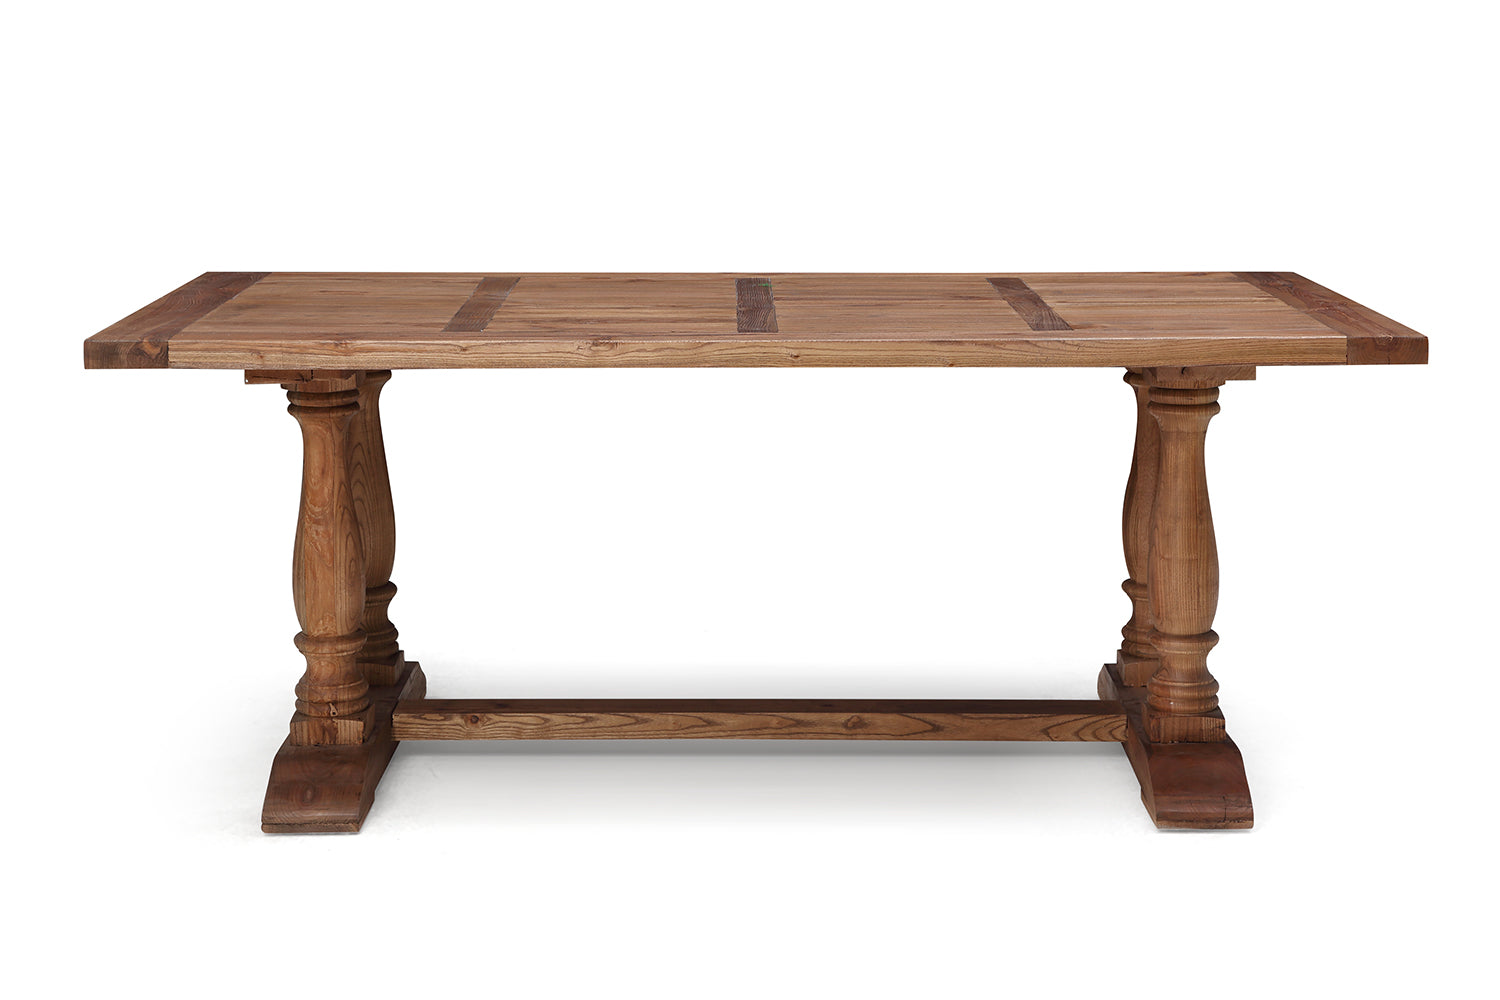 Table de salle manger en bois balustre rose moore for Table manger bois